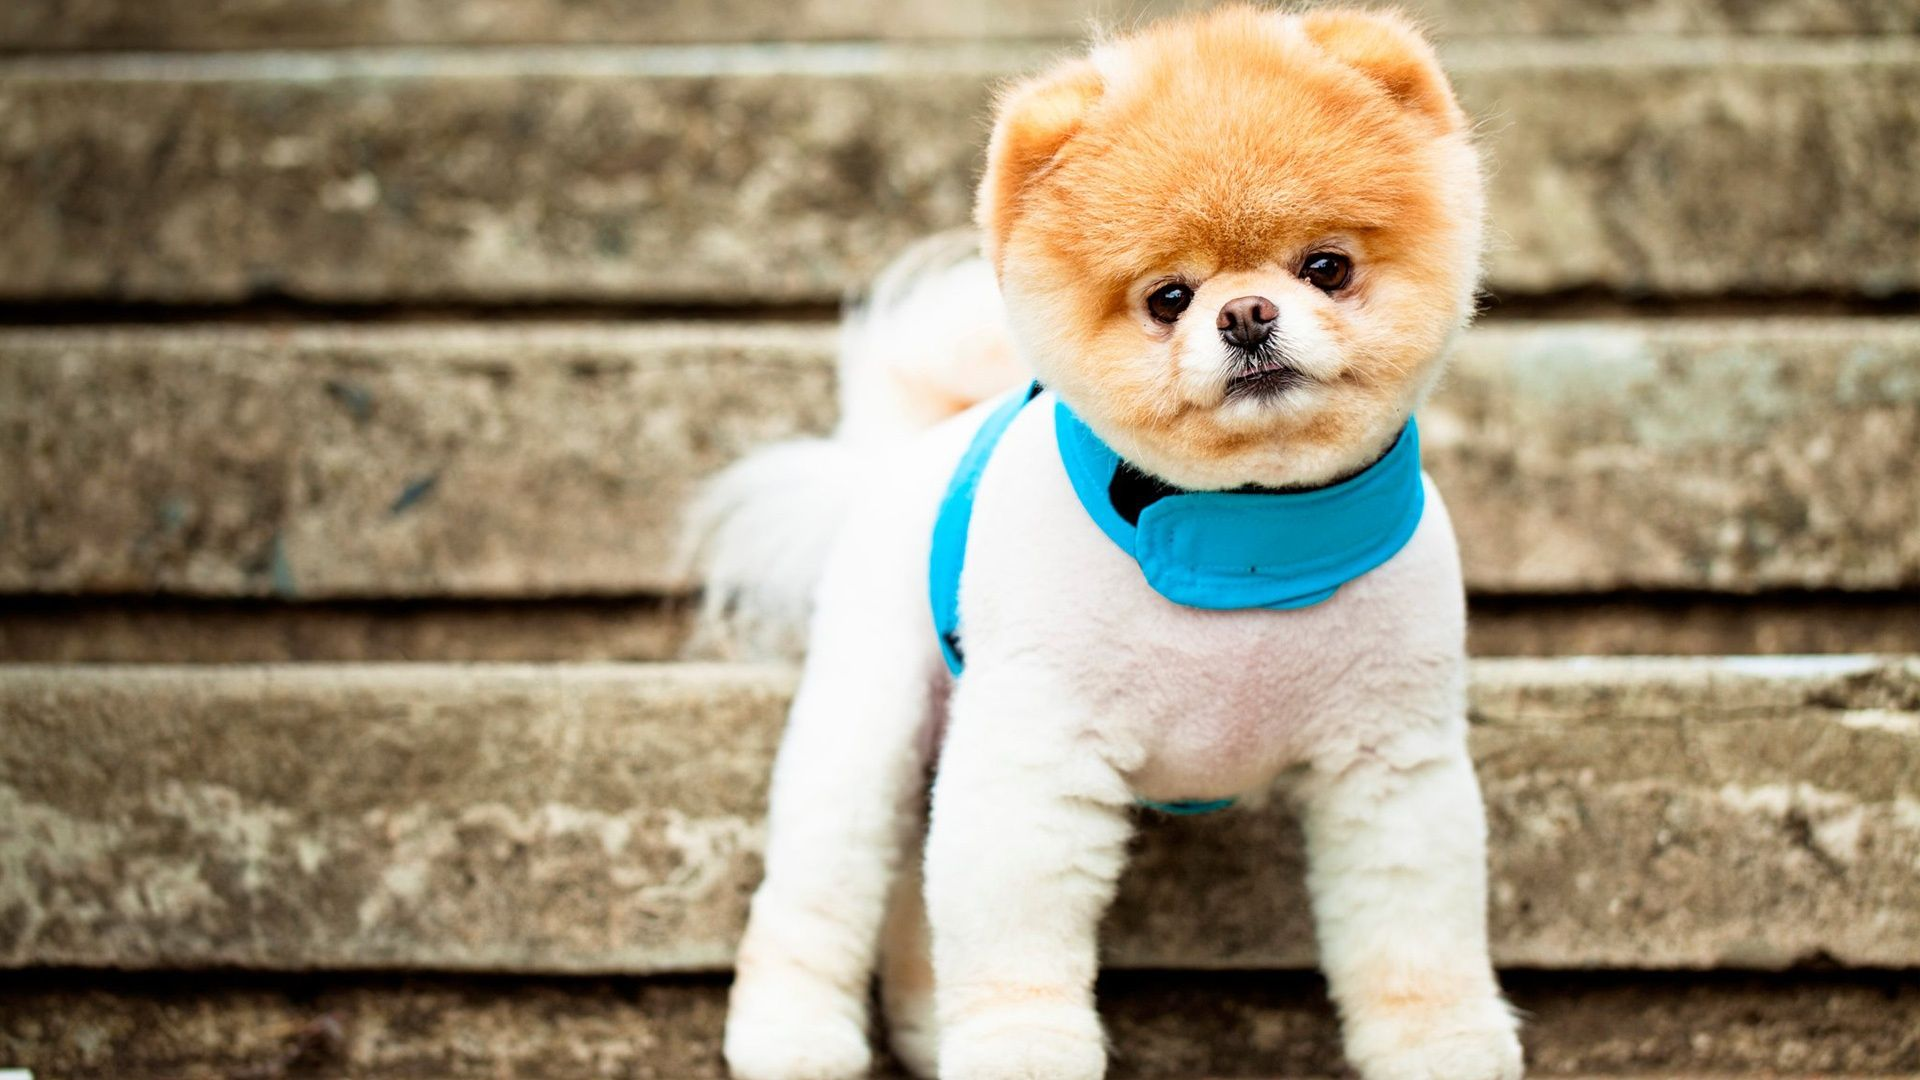 Boo The Cutest Dog Wallpapers Free Download Cute Dog Wallpaper